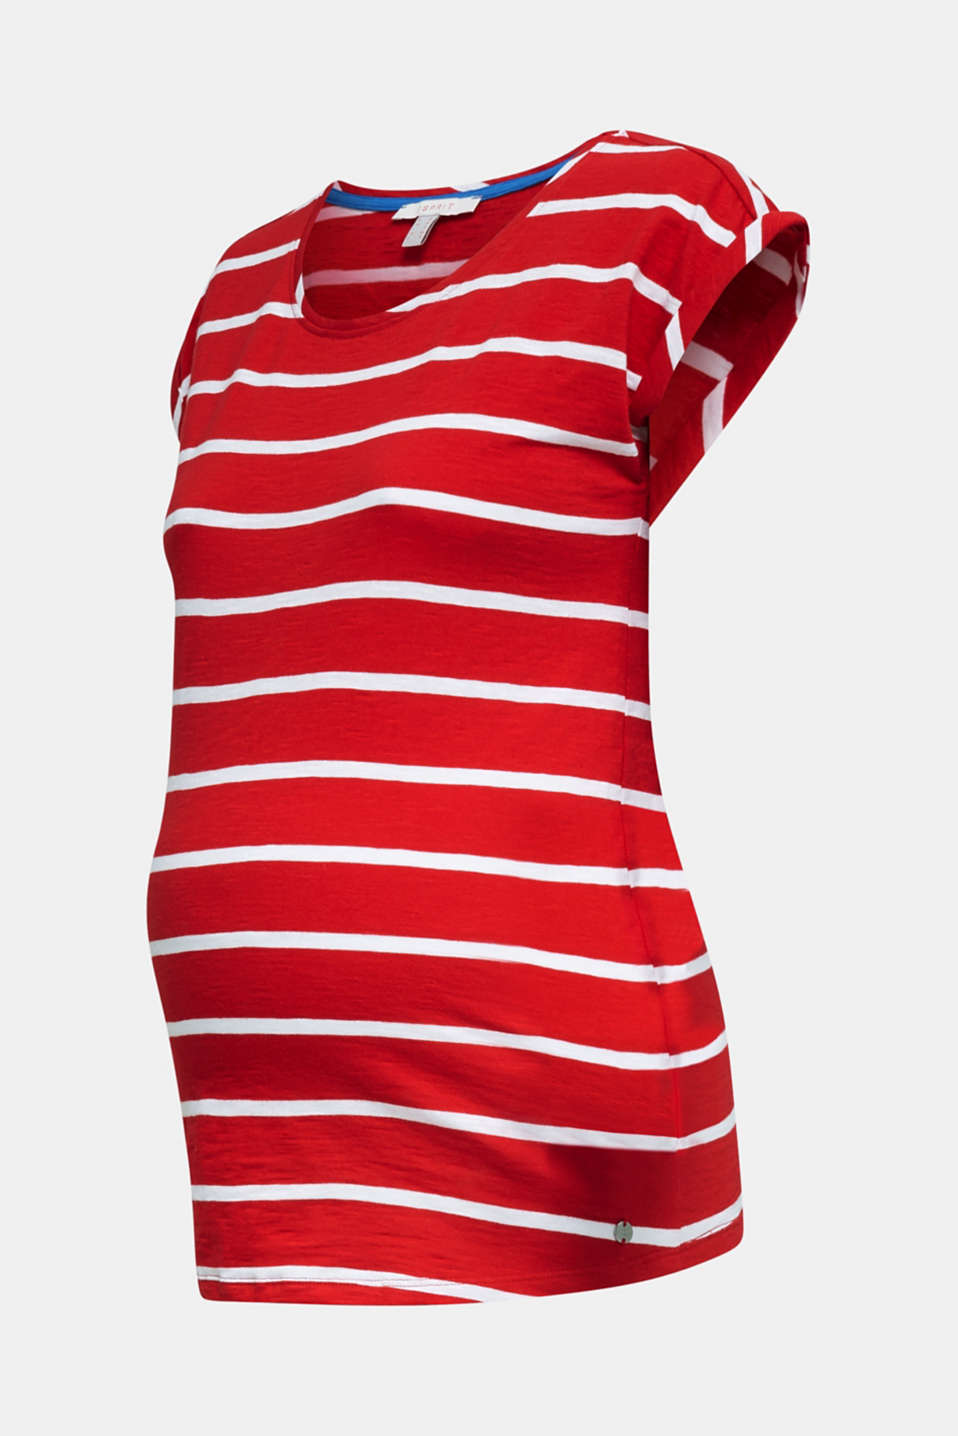 T-shirt with stripes, 100% cotton, LCRED, detail image number 6